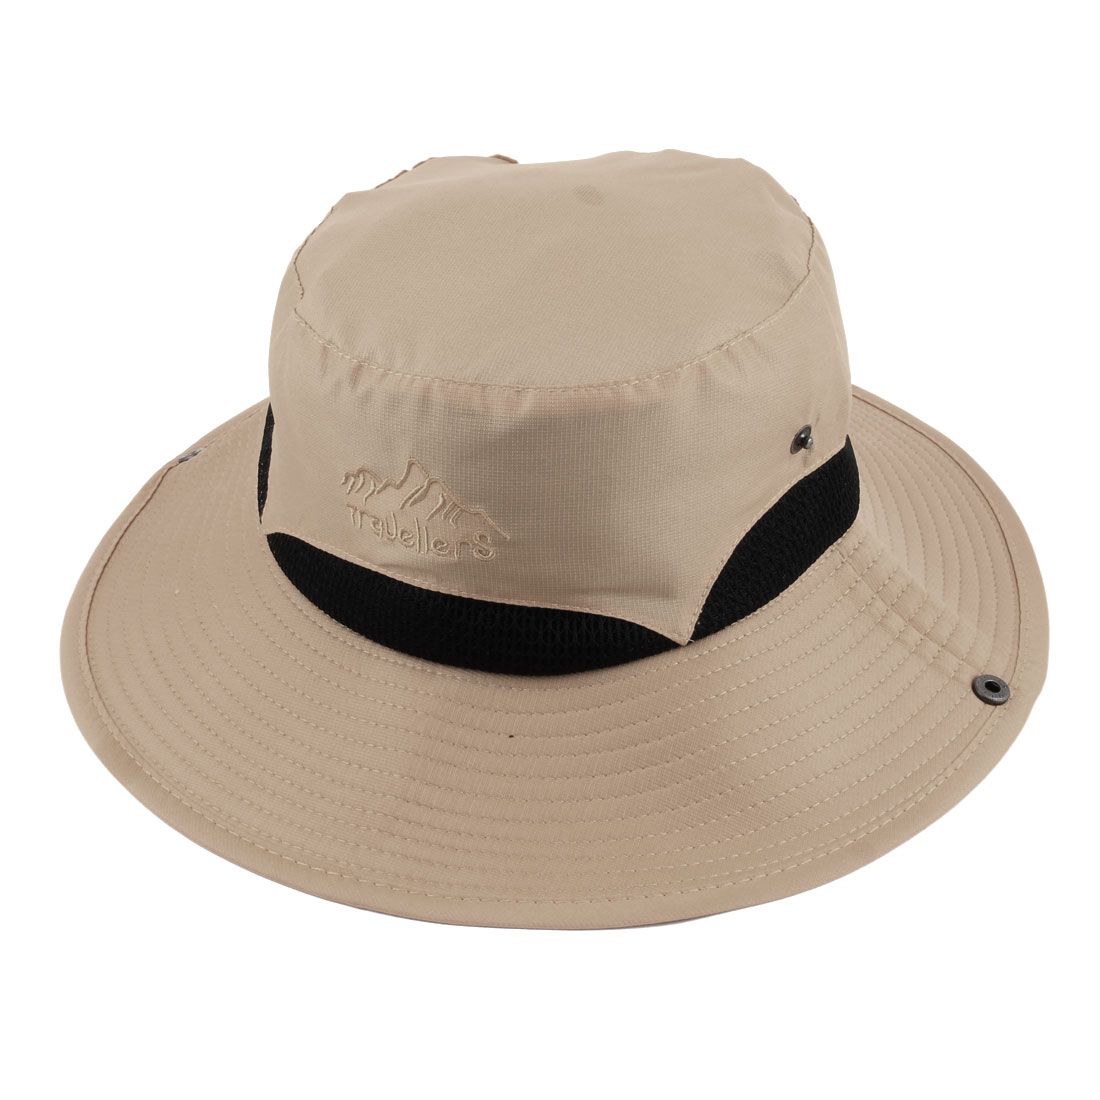 Ladies Women Polyester Foldable Head Decor Summer Protective Traveling Wide Brim Sun Cap Beach Fishing Hat Beige